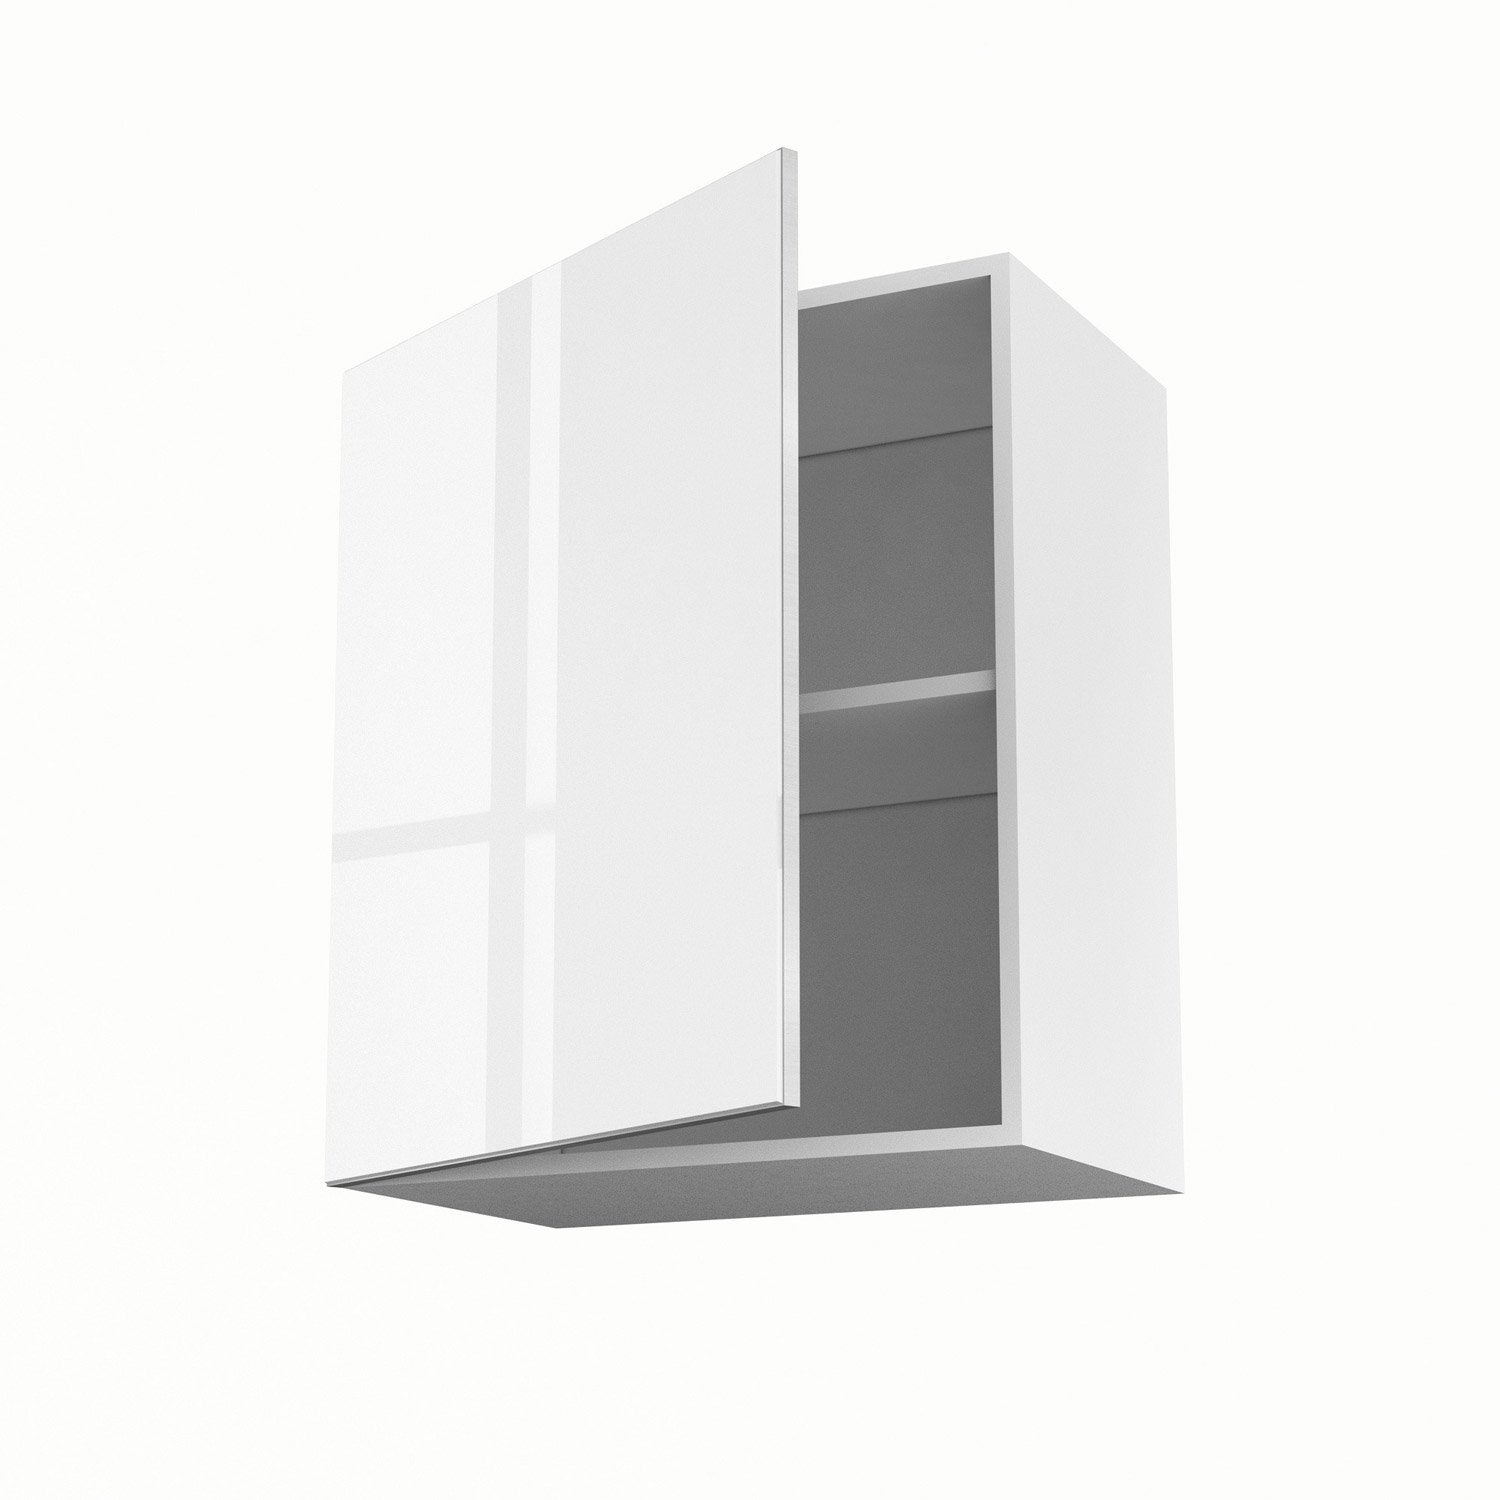 Meuble de cuisine haut blanc 1 porte everest x x for Ikea porte 60 x 70